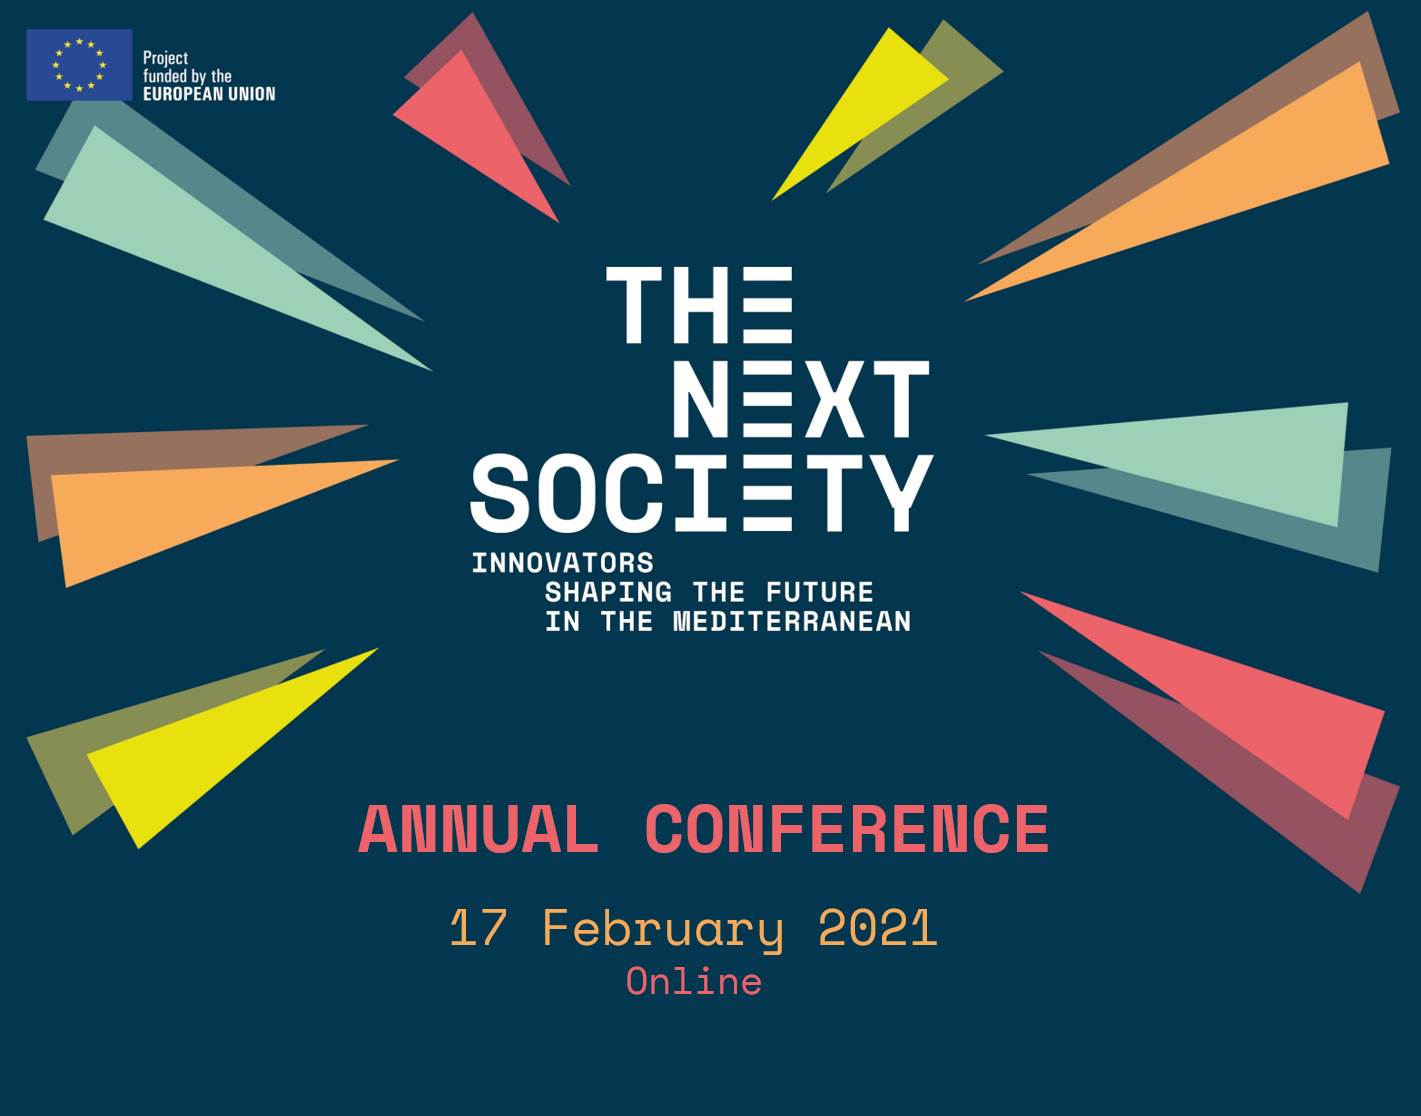 THE NEXT SOCIETY Annual Conference 2021